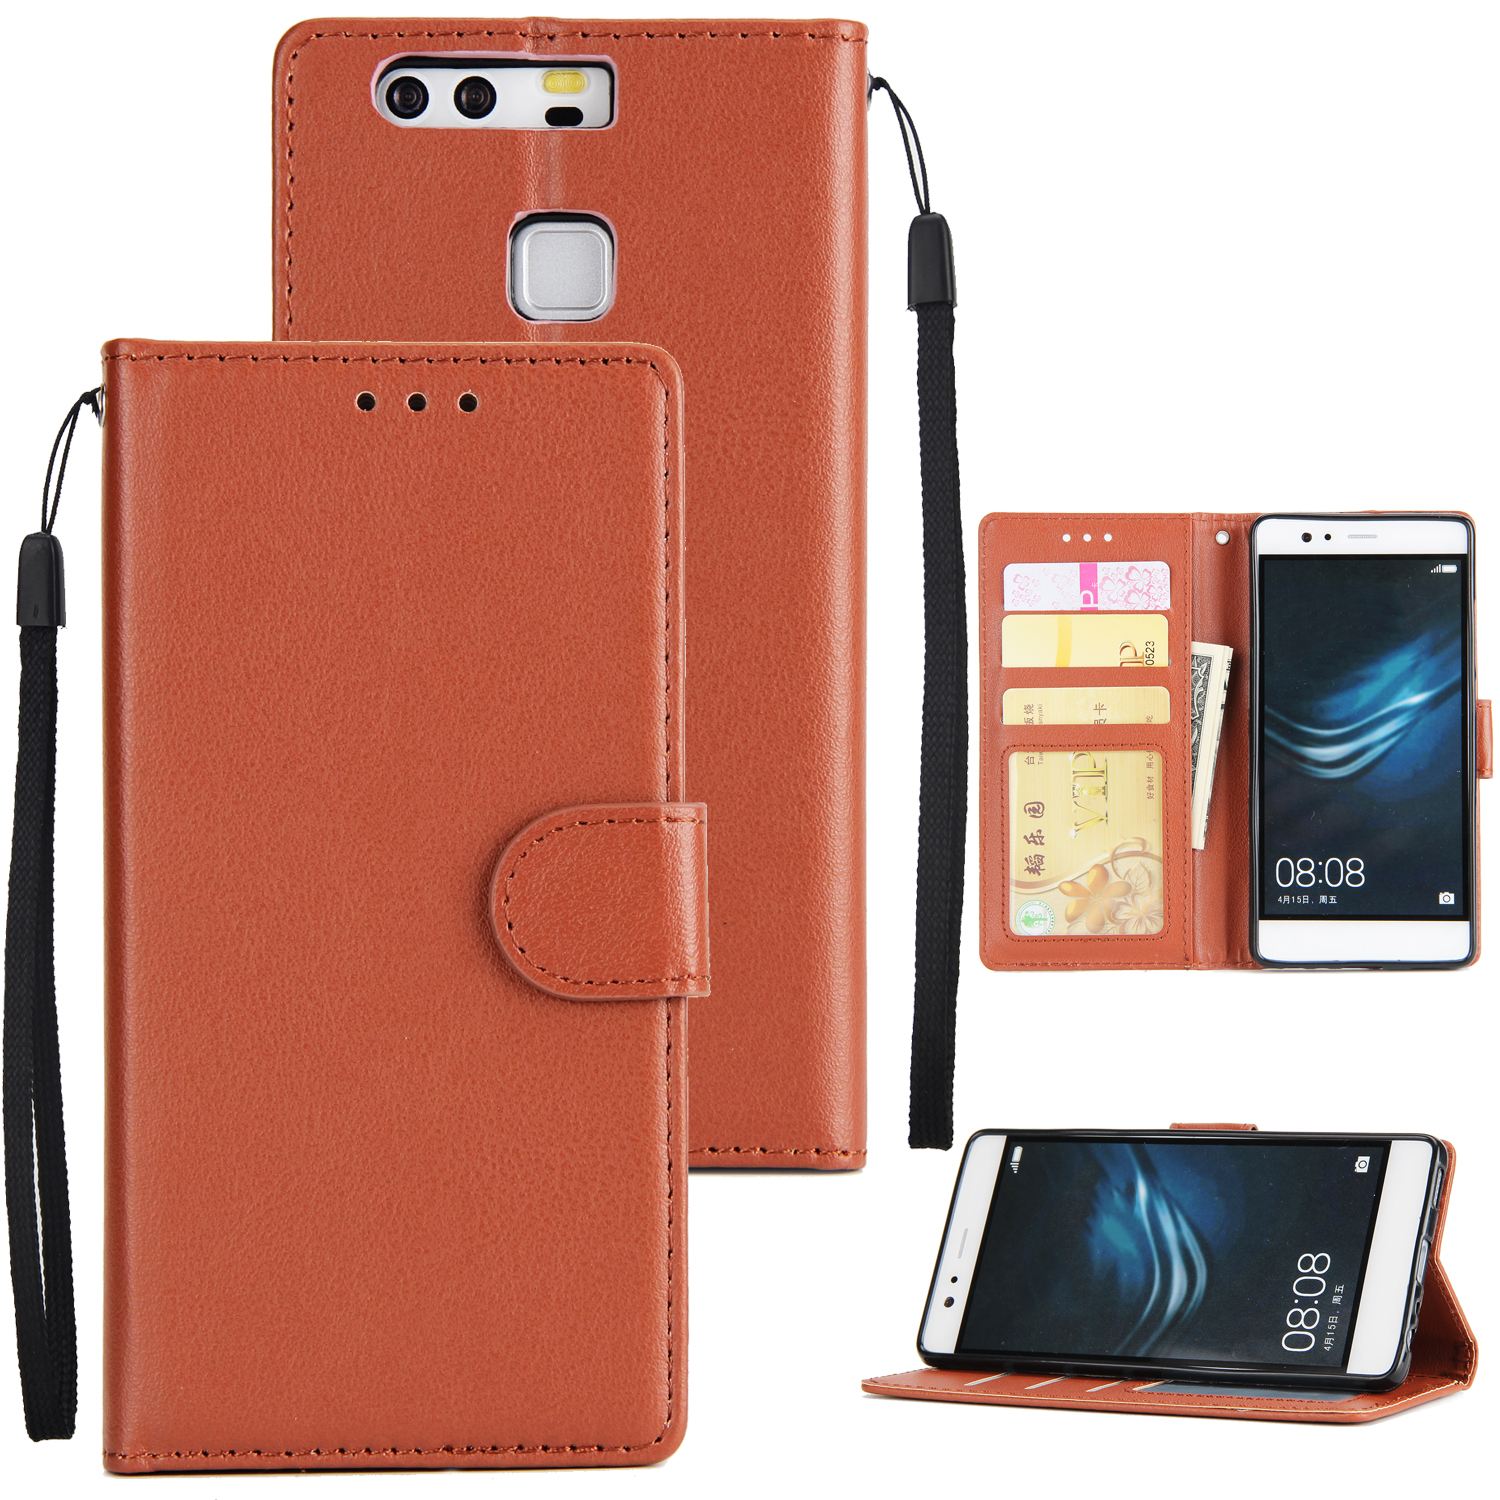 For Huawei P9 plus PU Leather Smart Phone Case Protective Cover with Buckle & 3 Card Position  brown